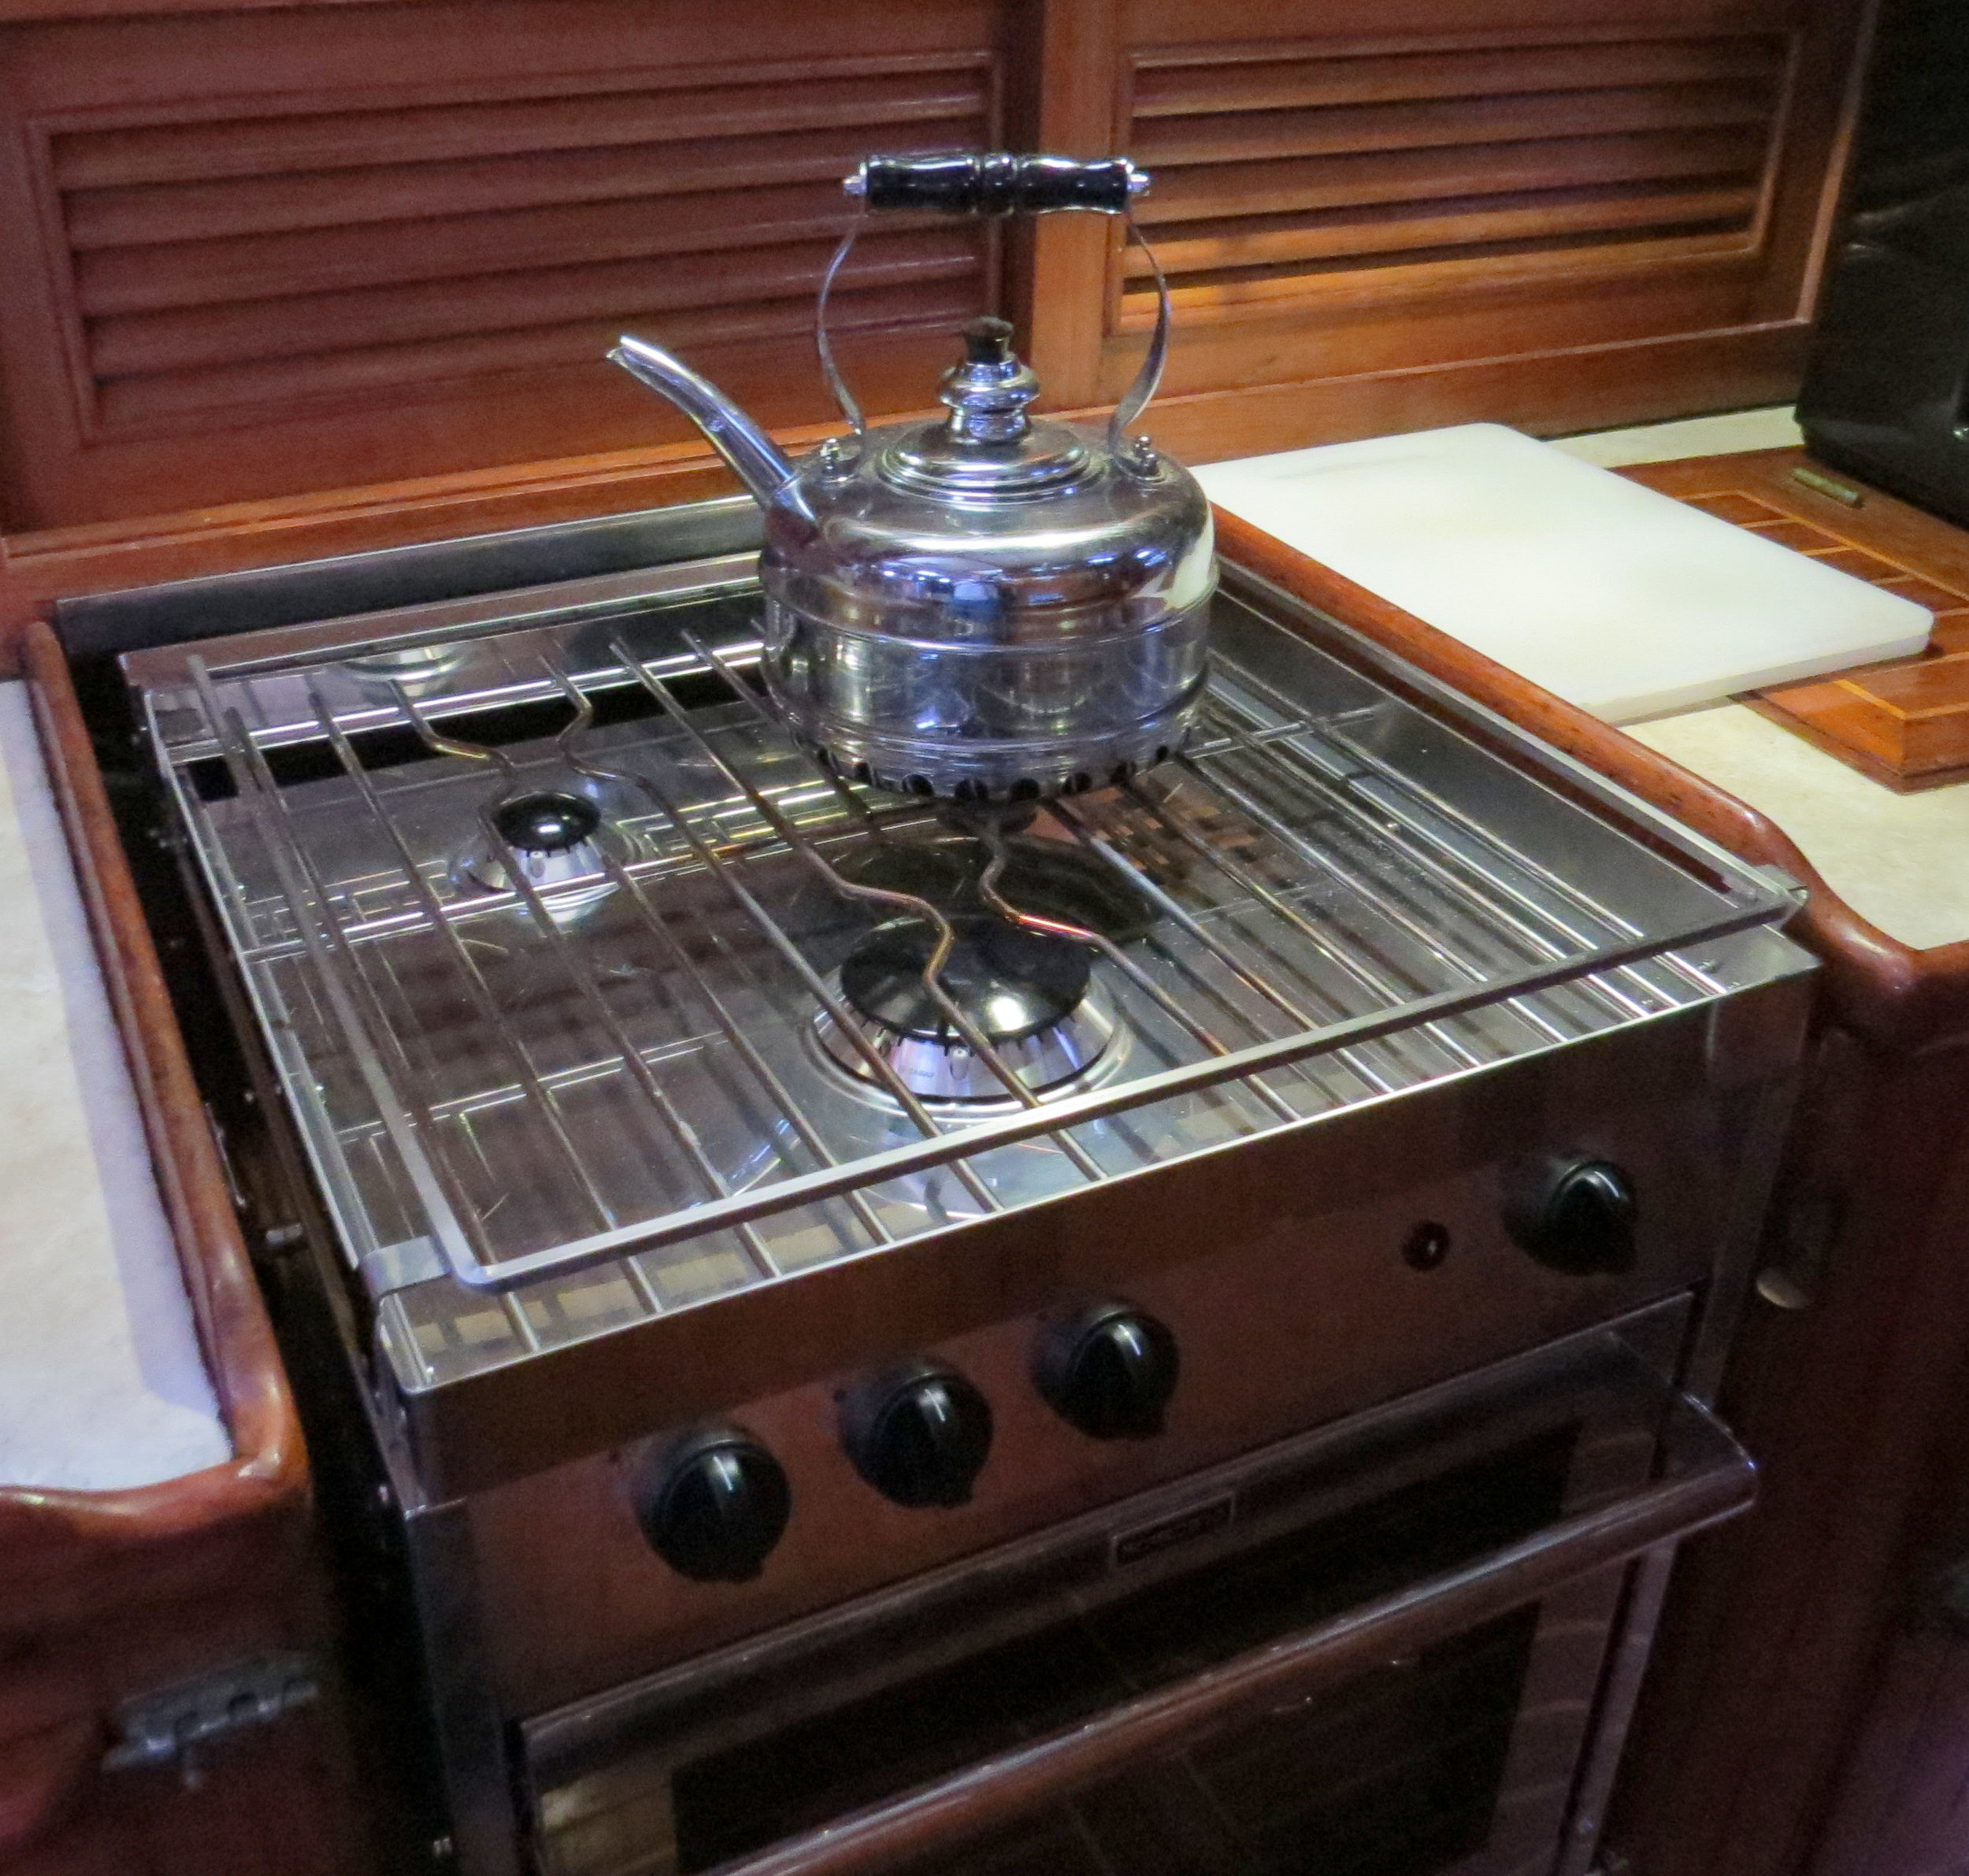 A new galley stove ... all shiny and bright.